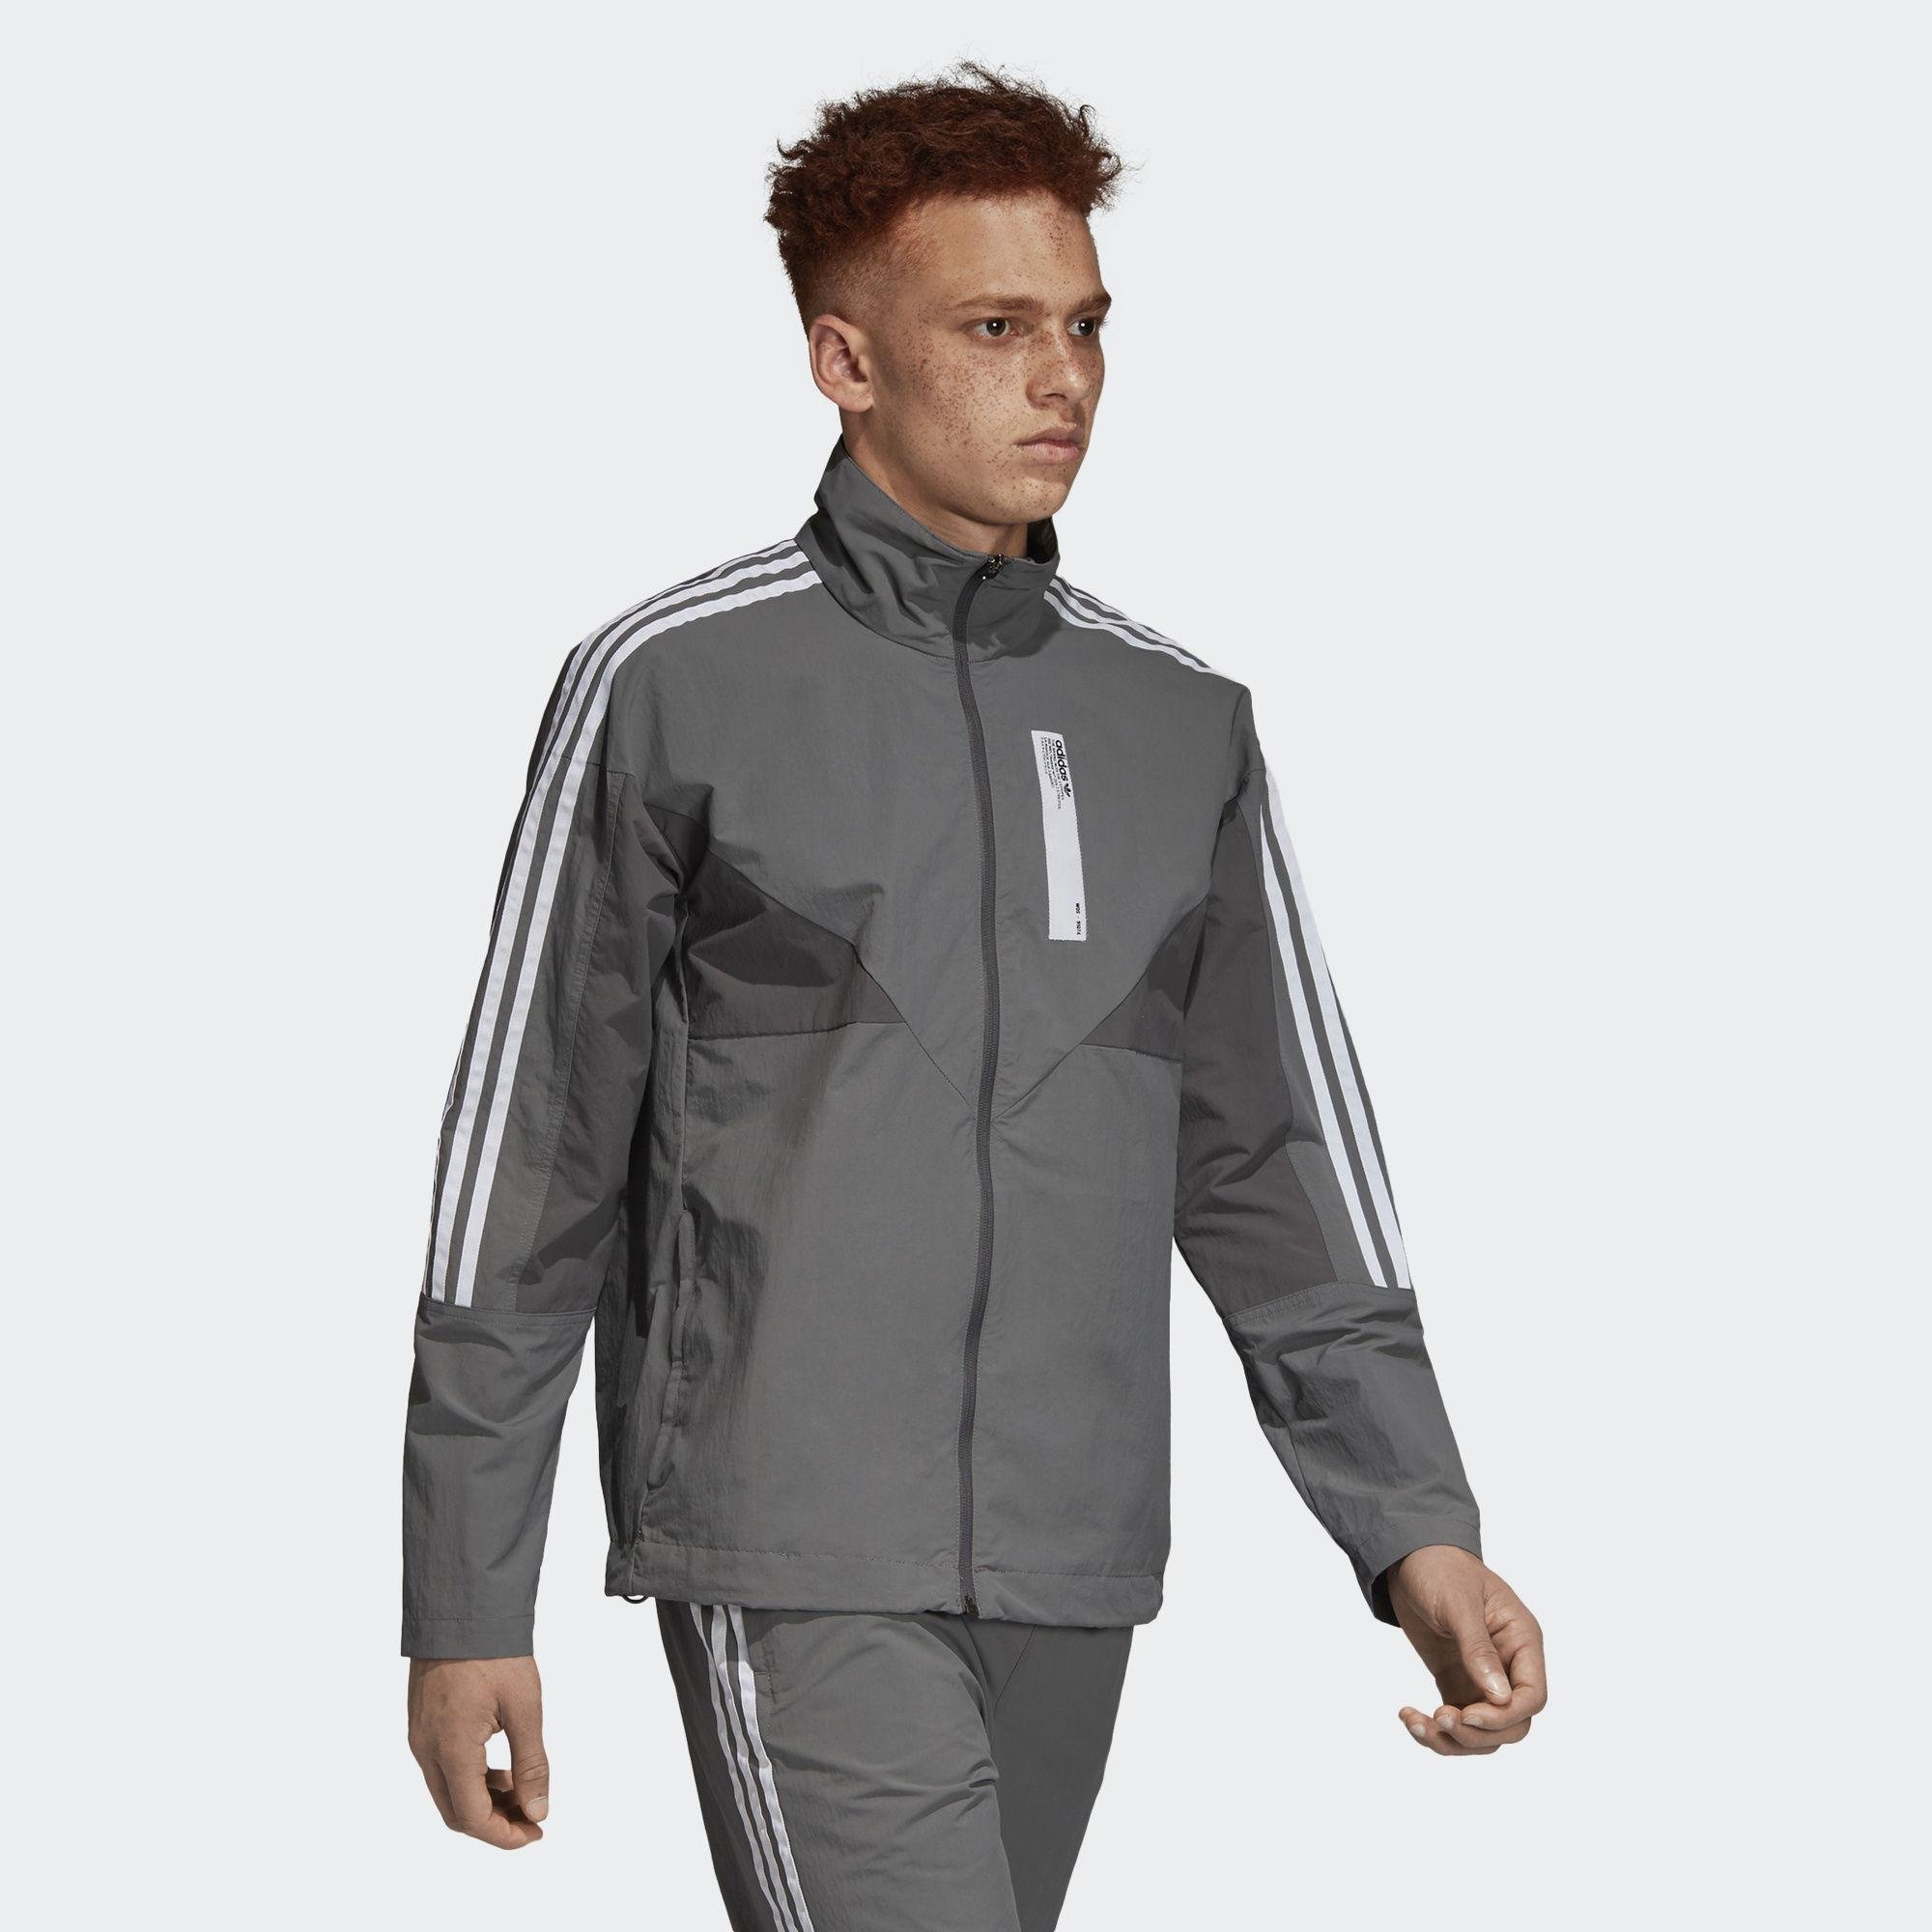 2a91a85146edc Adidas - Gray Nmd Track Jacket for Men - Lyst. View fullscreen